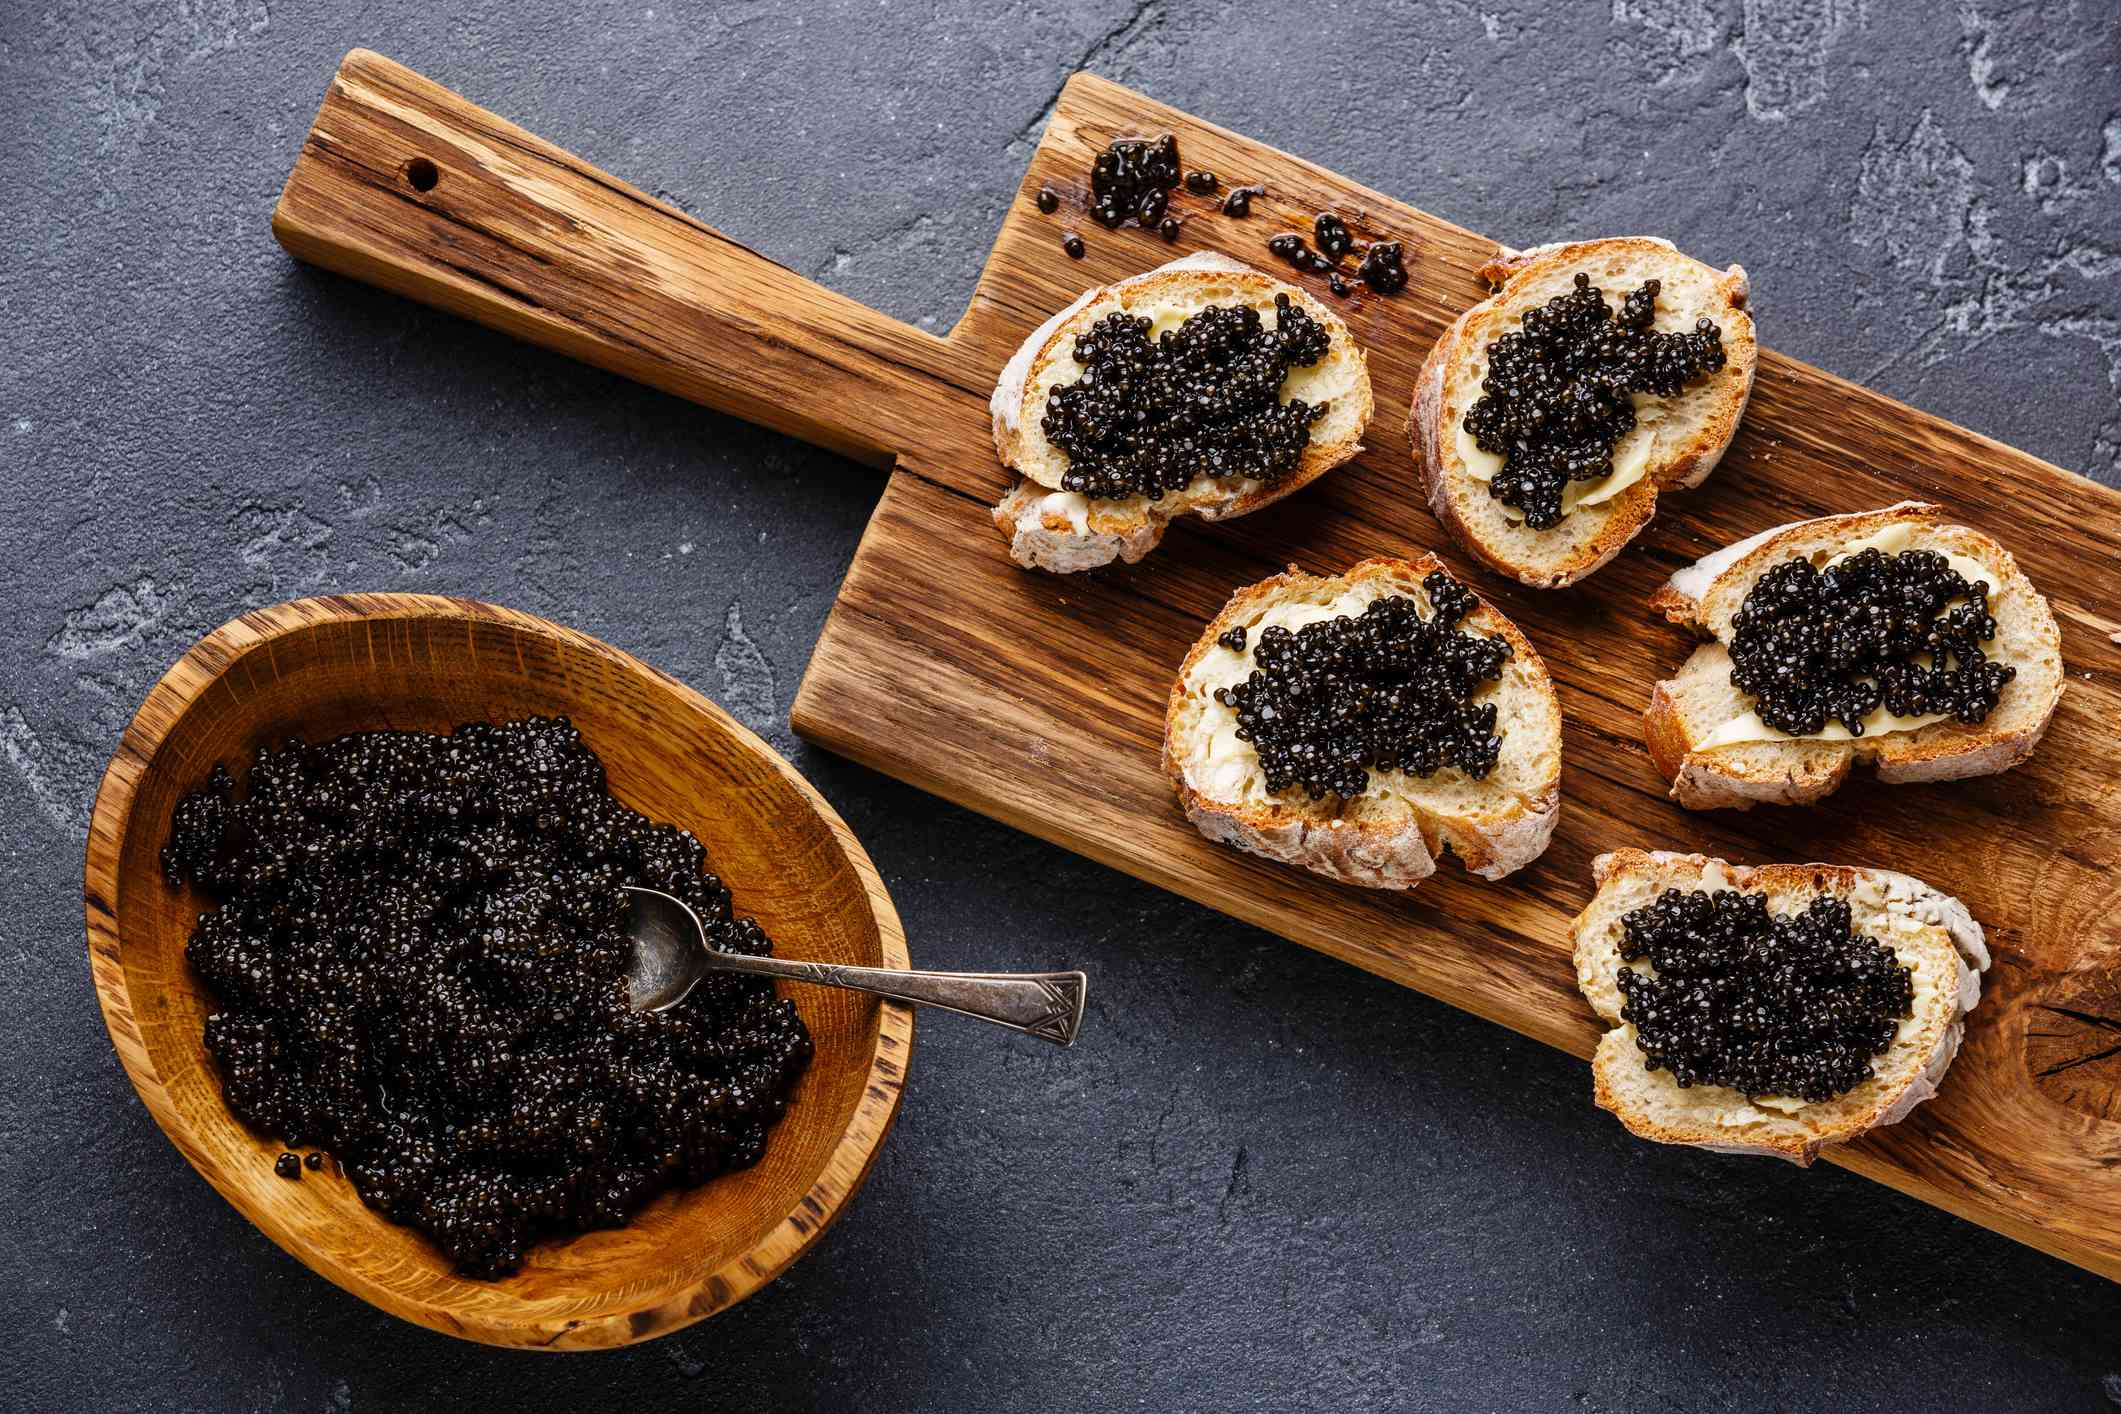 Sturgeon black caviar in wooden bowl and sandwiches